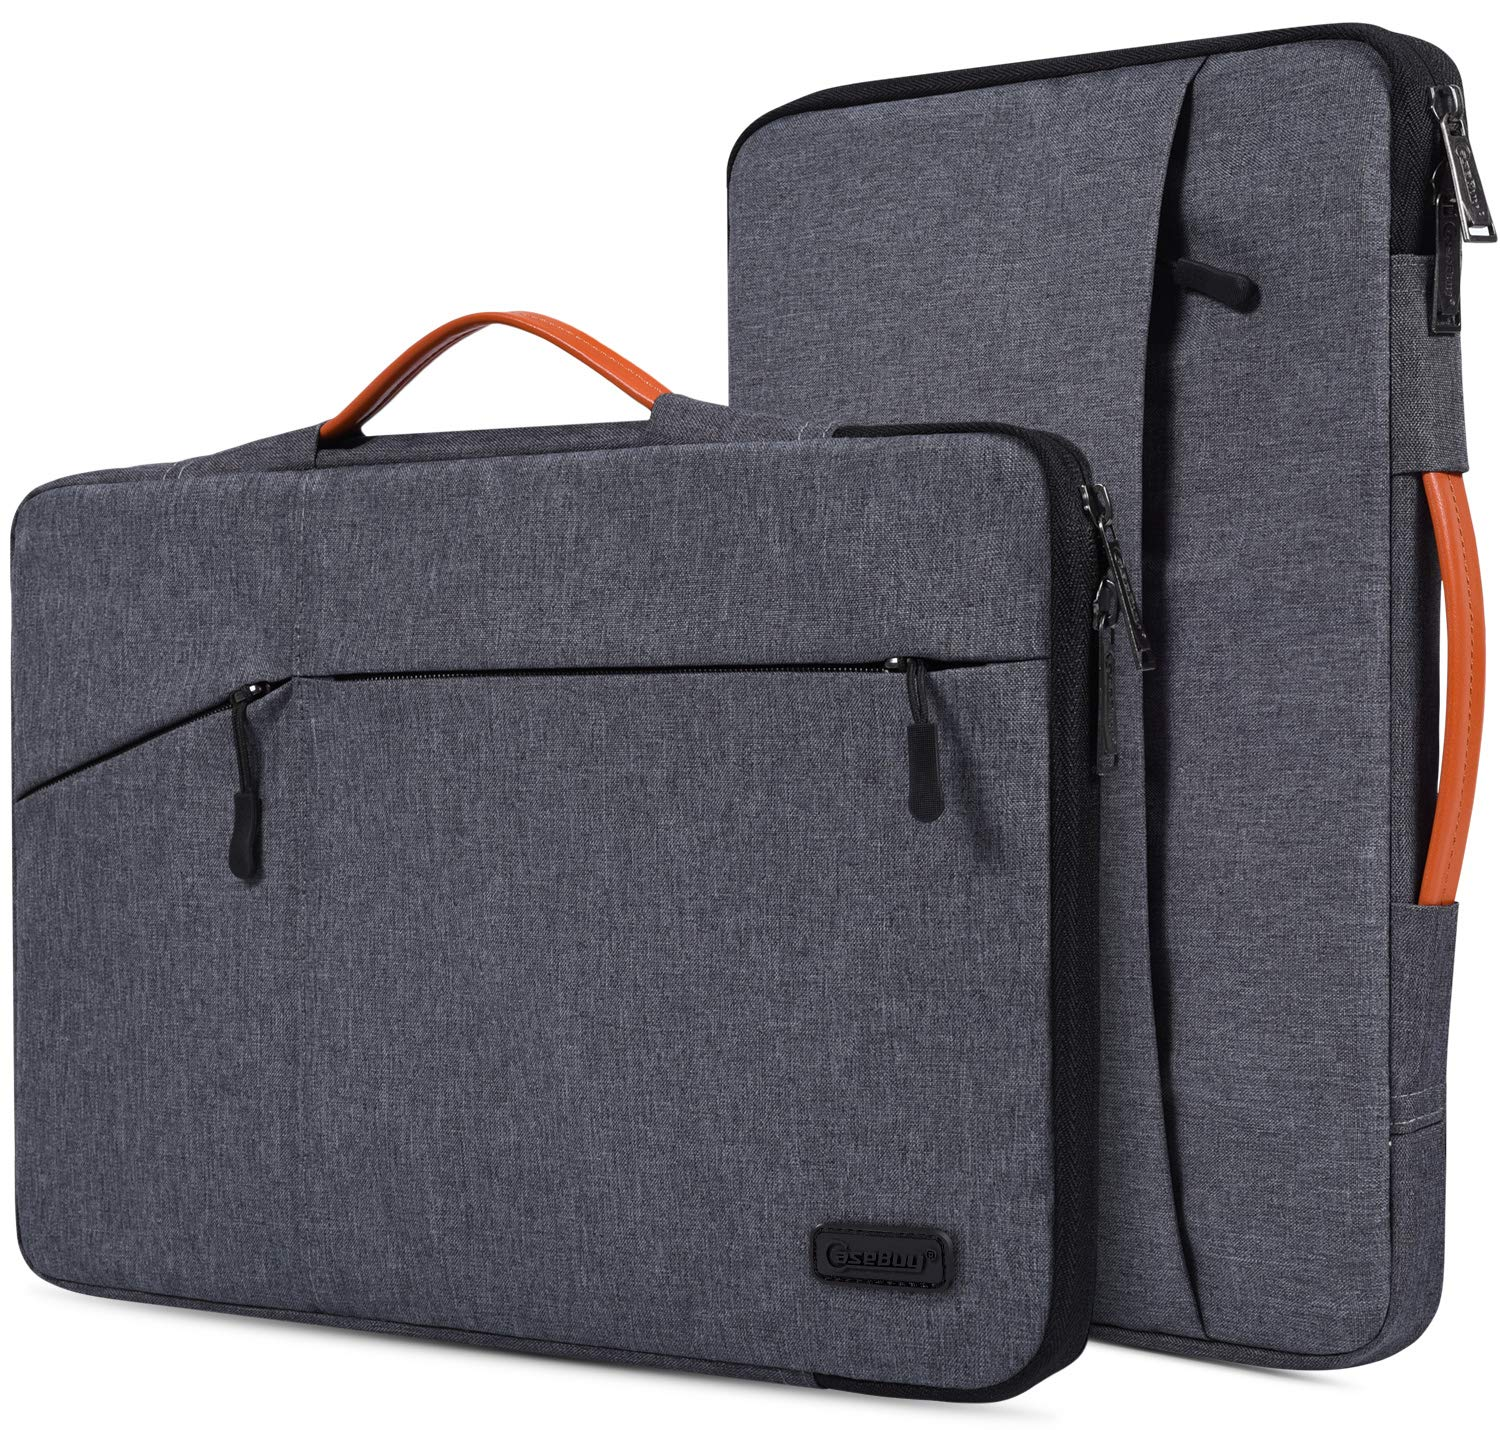 15.6 Inch Waterpoof Laptop Sleeve Case for Acer Aspire 5 A515/Aspire E 15/Chromebook 15, HP Envy x360/OMEN/Pavilion 15, MSI GV62, DELL, ASUS, 15.6'' Protective Notebook Briefcase Bag